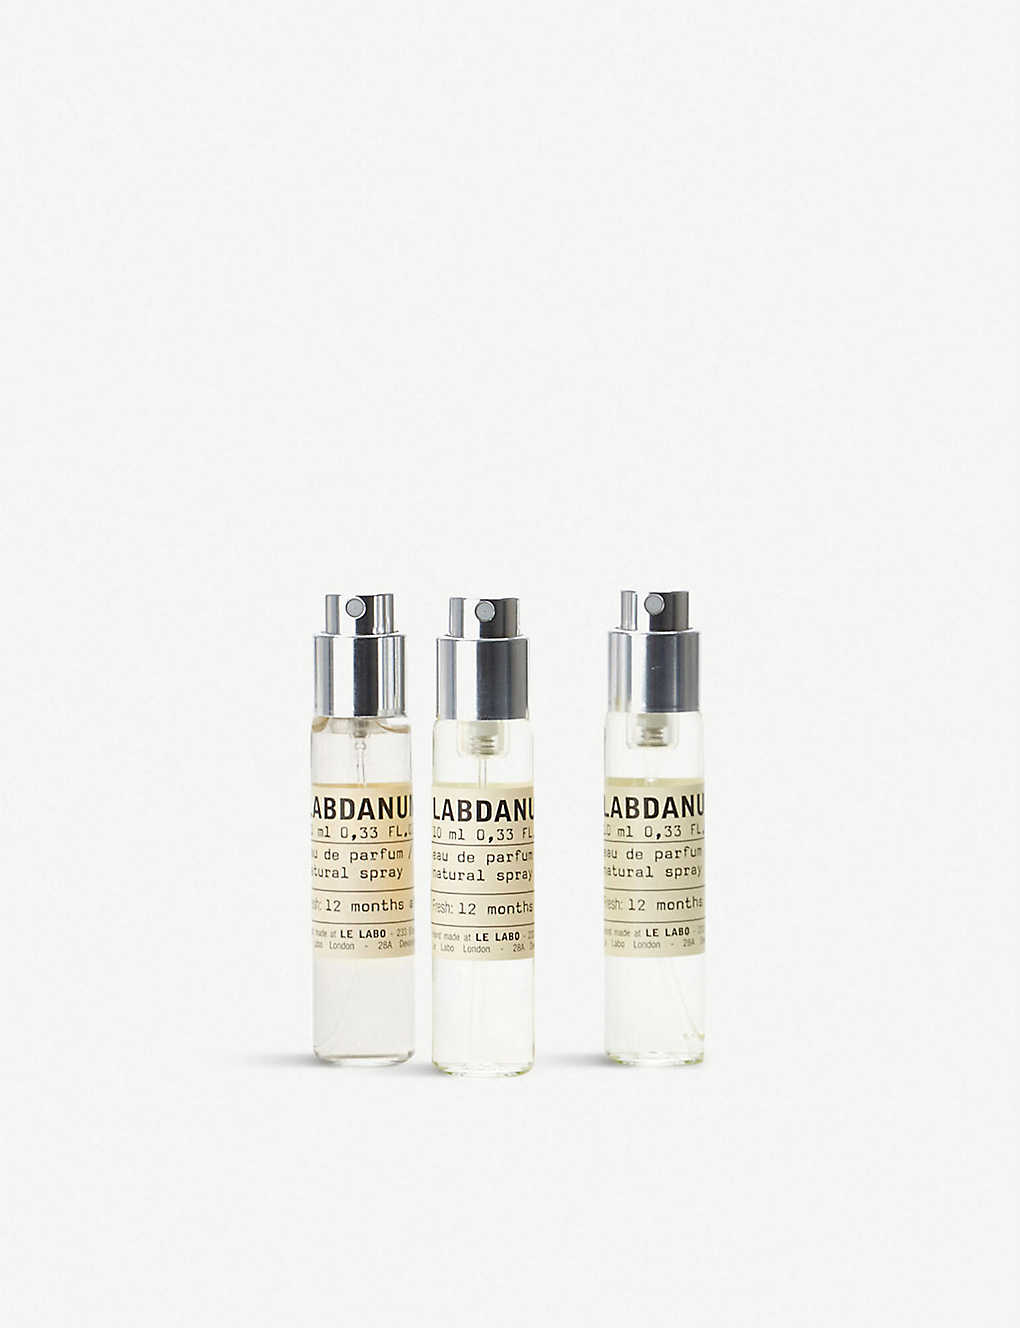 LE LABO: Labdanum 18 eau de parfum travel refill set 3 x 10ml